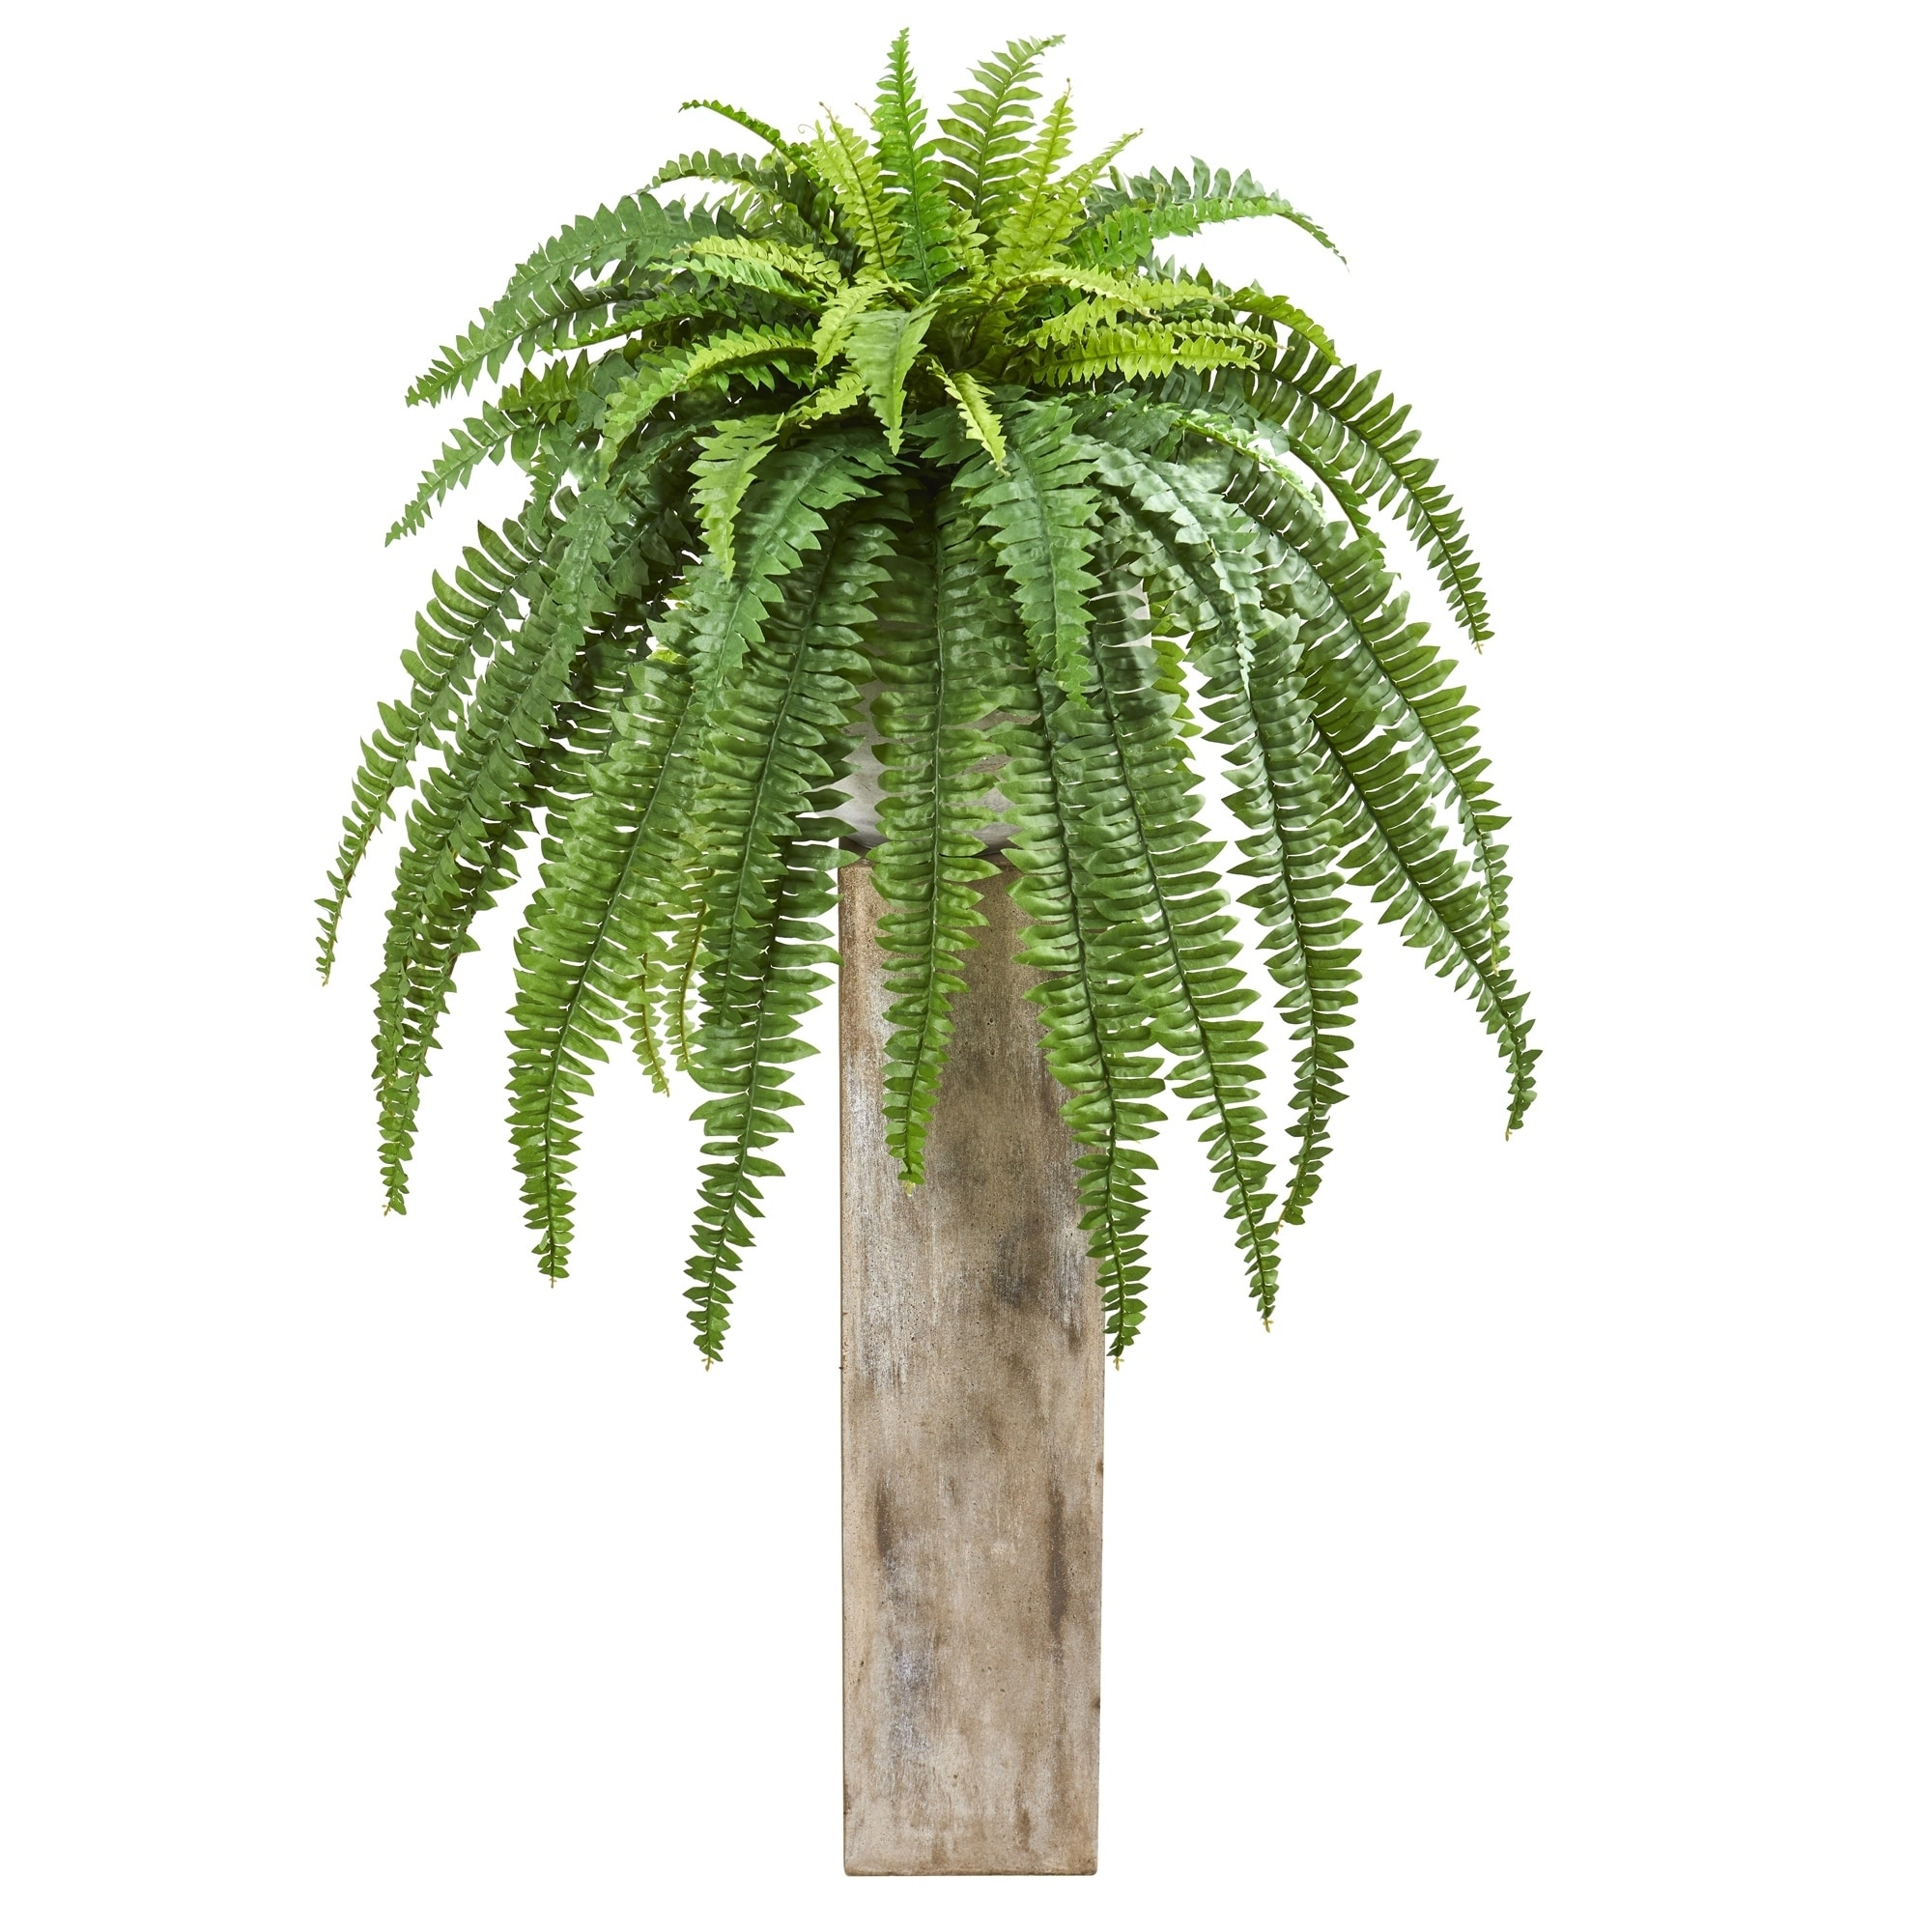 23 Boston Fern Artificial Plant in Sand Colored Planter